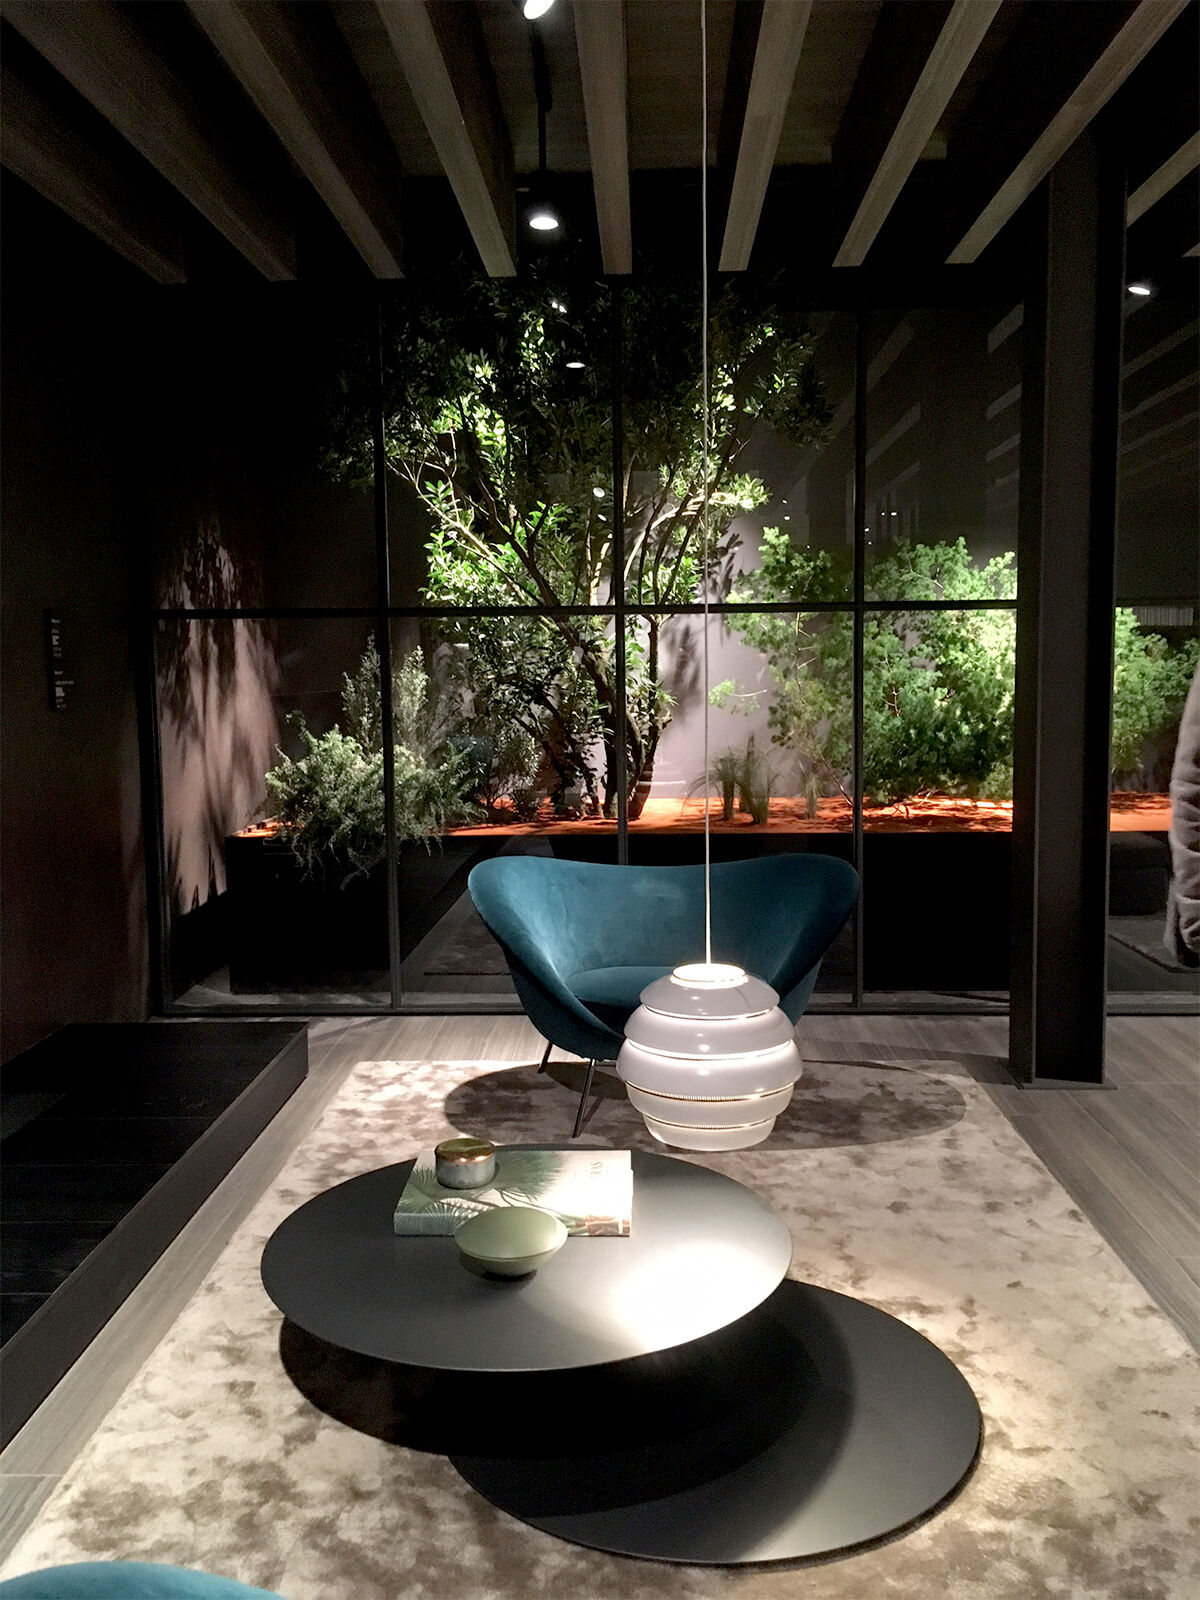 Installation view of Molteni & C's booth at Salone del Mobile.